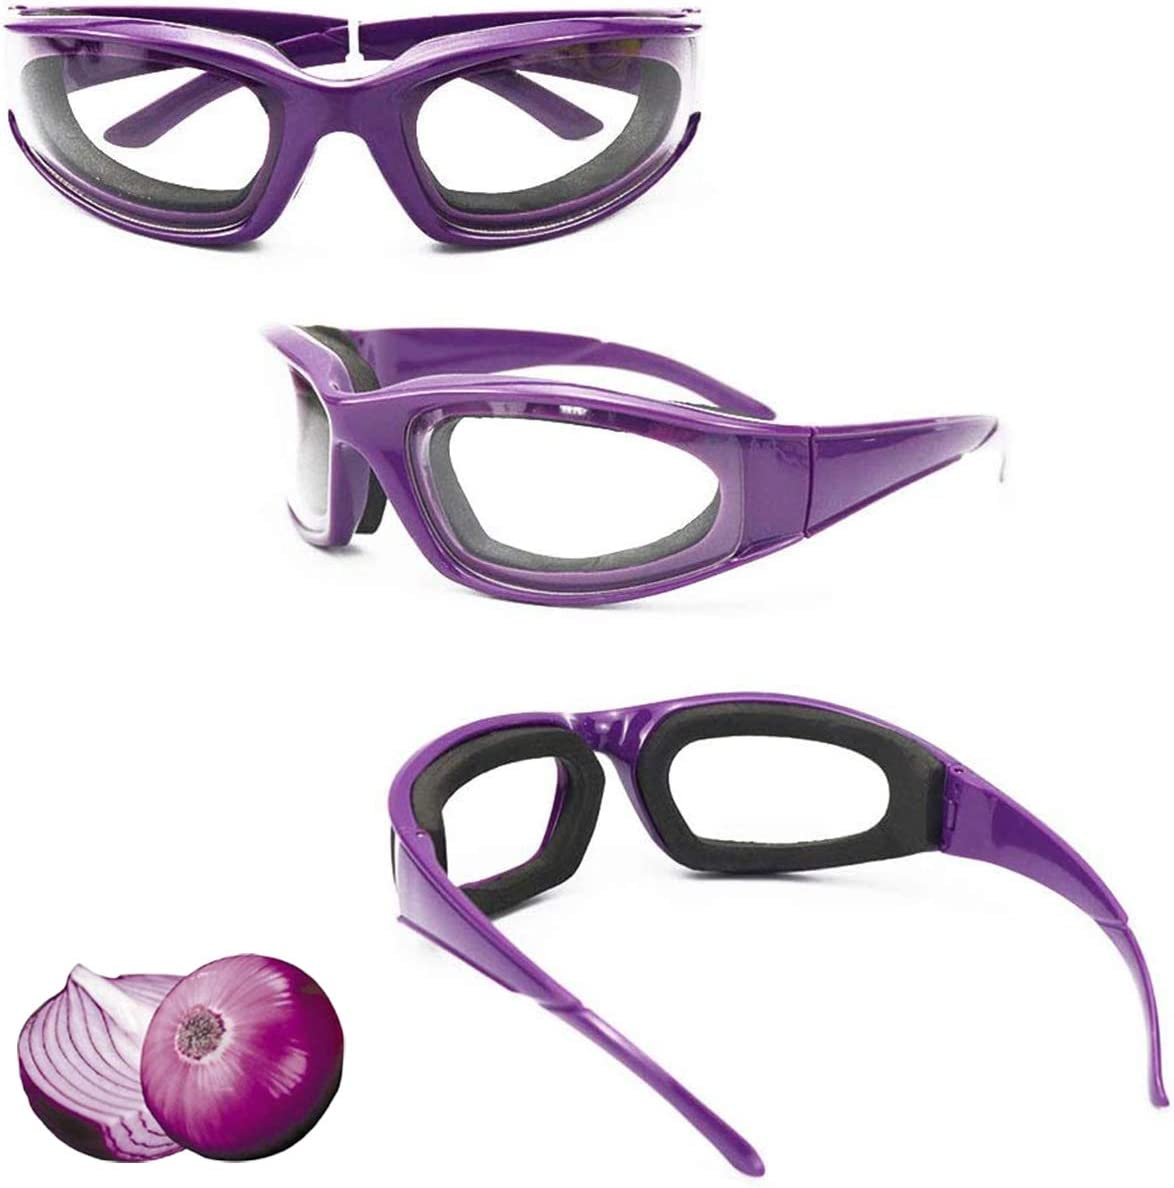 3 Pieces Onion Goggles Glasses, Anti-Fog No-Tears Kitchen Onion Glasses with Inside Sponge, Kitchen Gadget for Chopping Onion Cooking Grilling Dust-proof, Eye Protector for Women Men Cleaning Kitchen: Kitchen & Dining